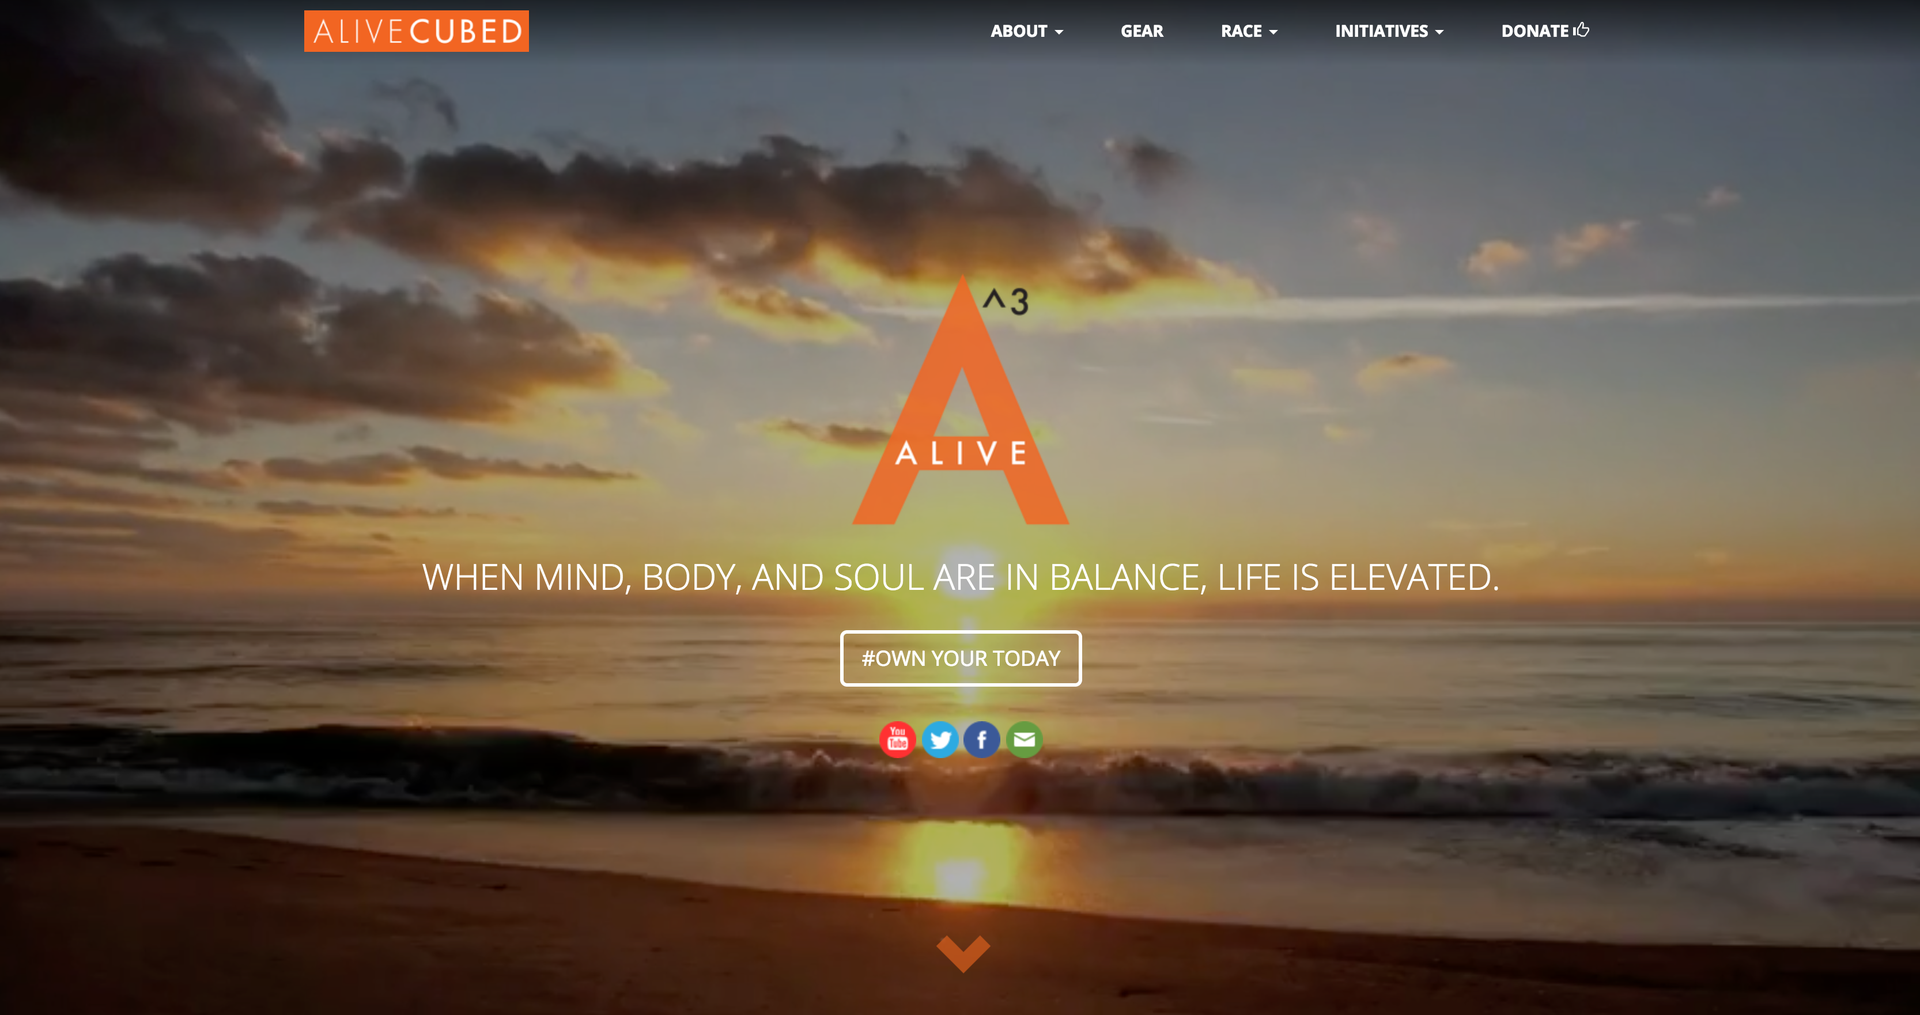 Alive Cubed website